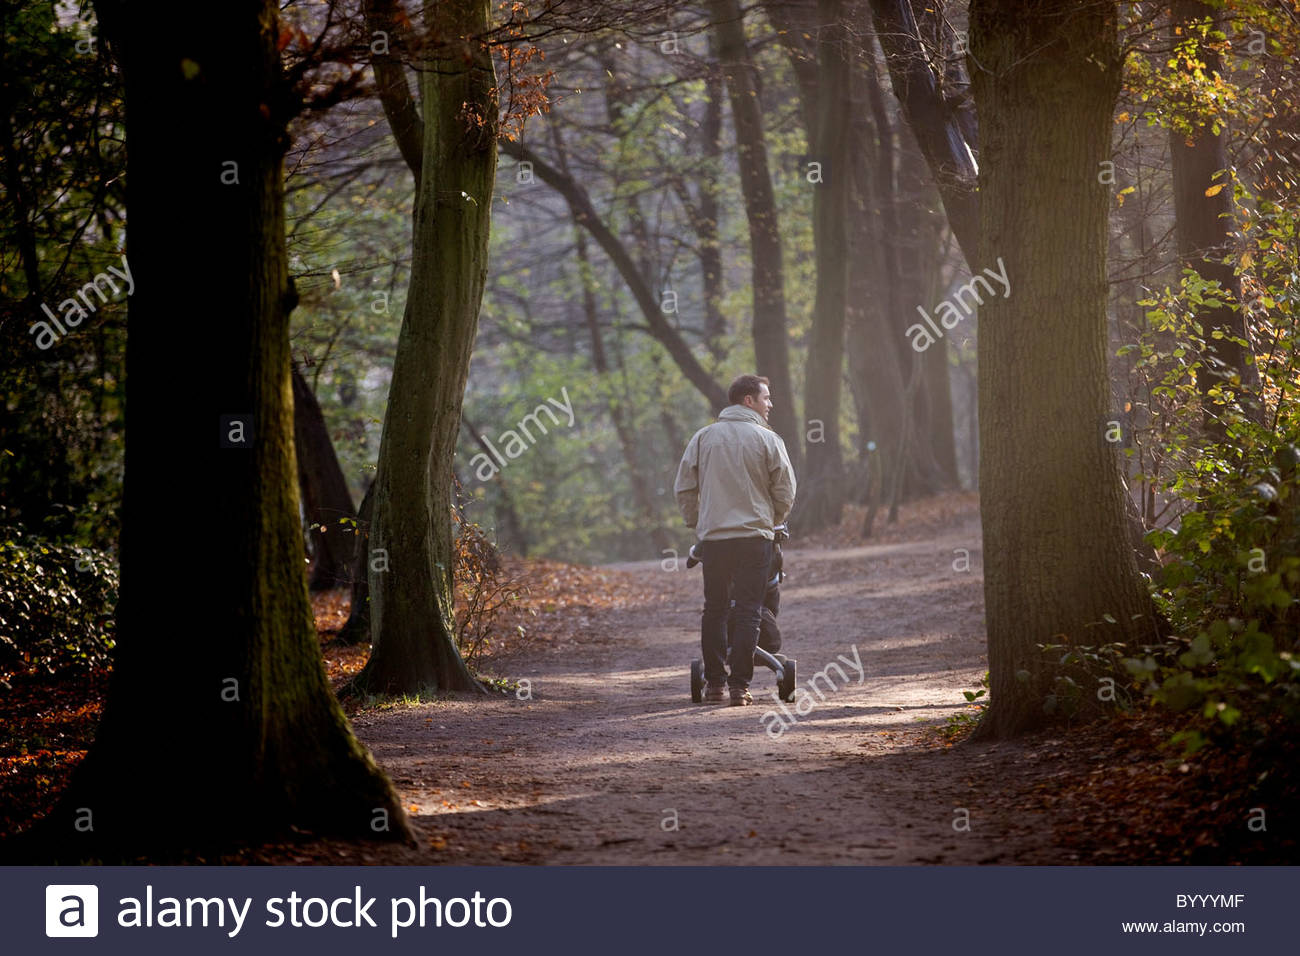 A young father pushing a stroller in the park, rear view - Stock Image